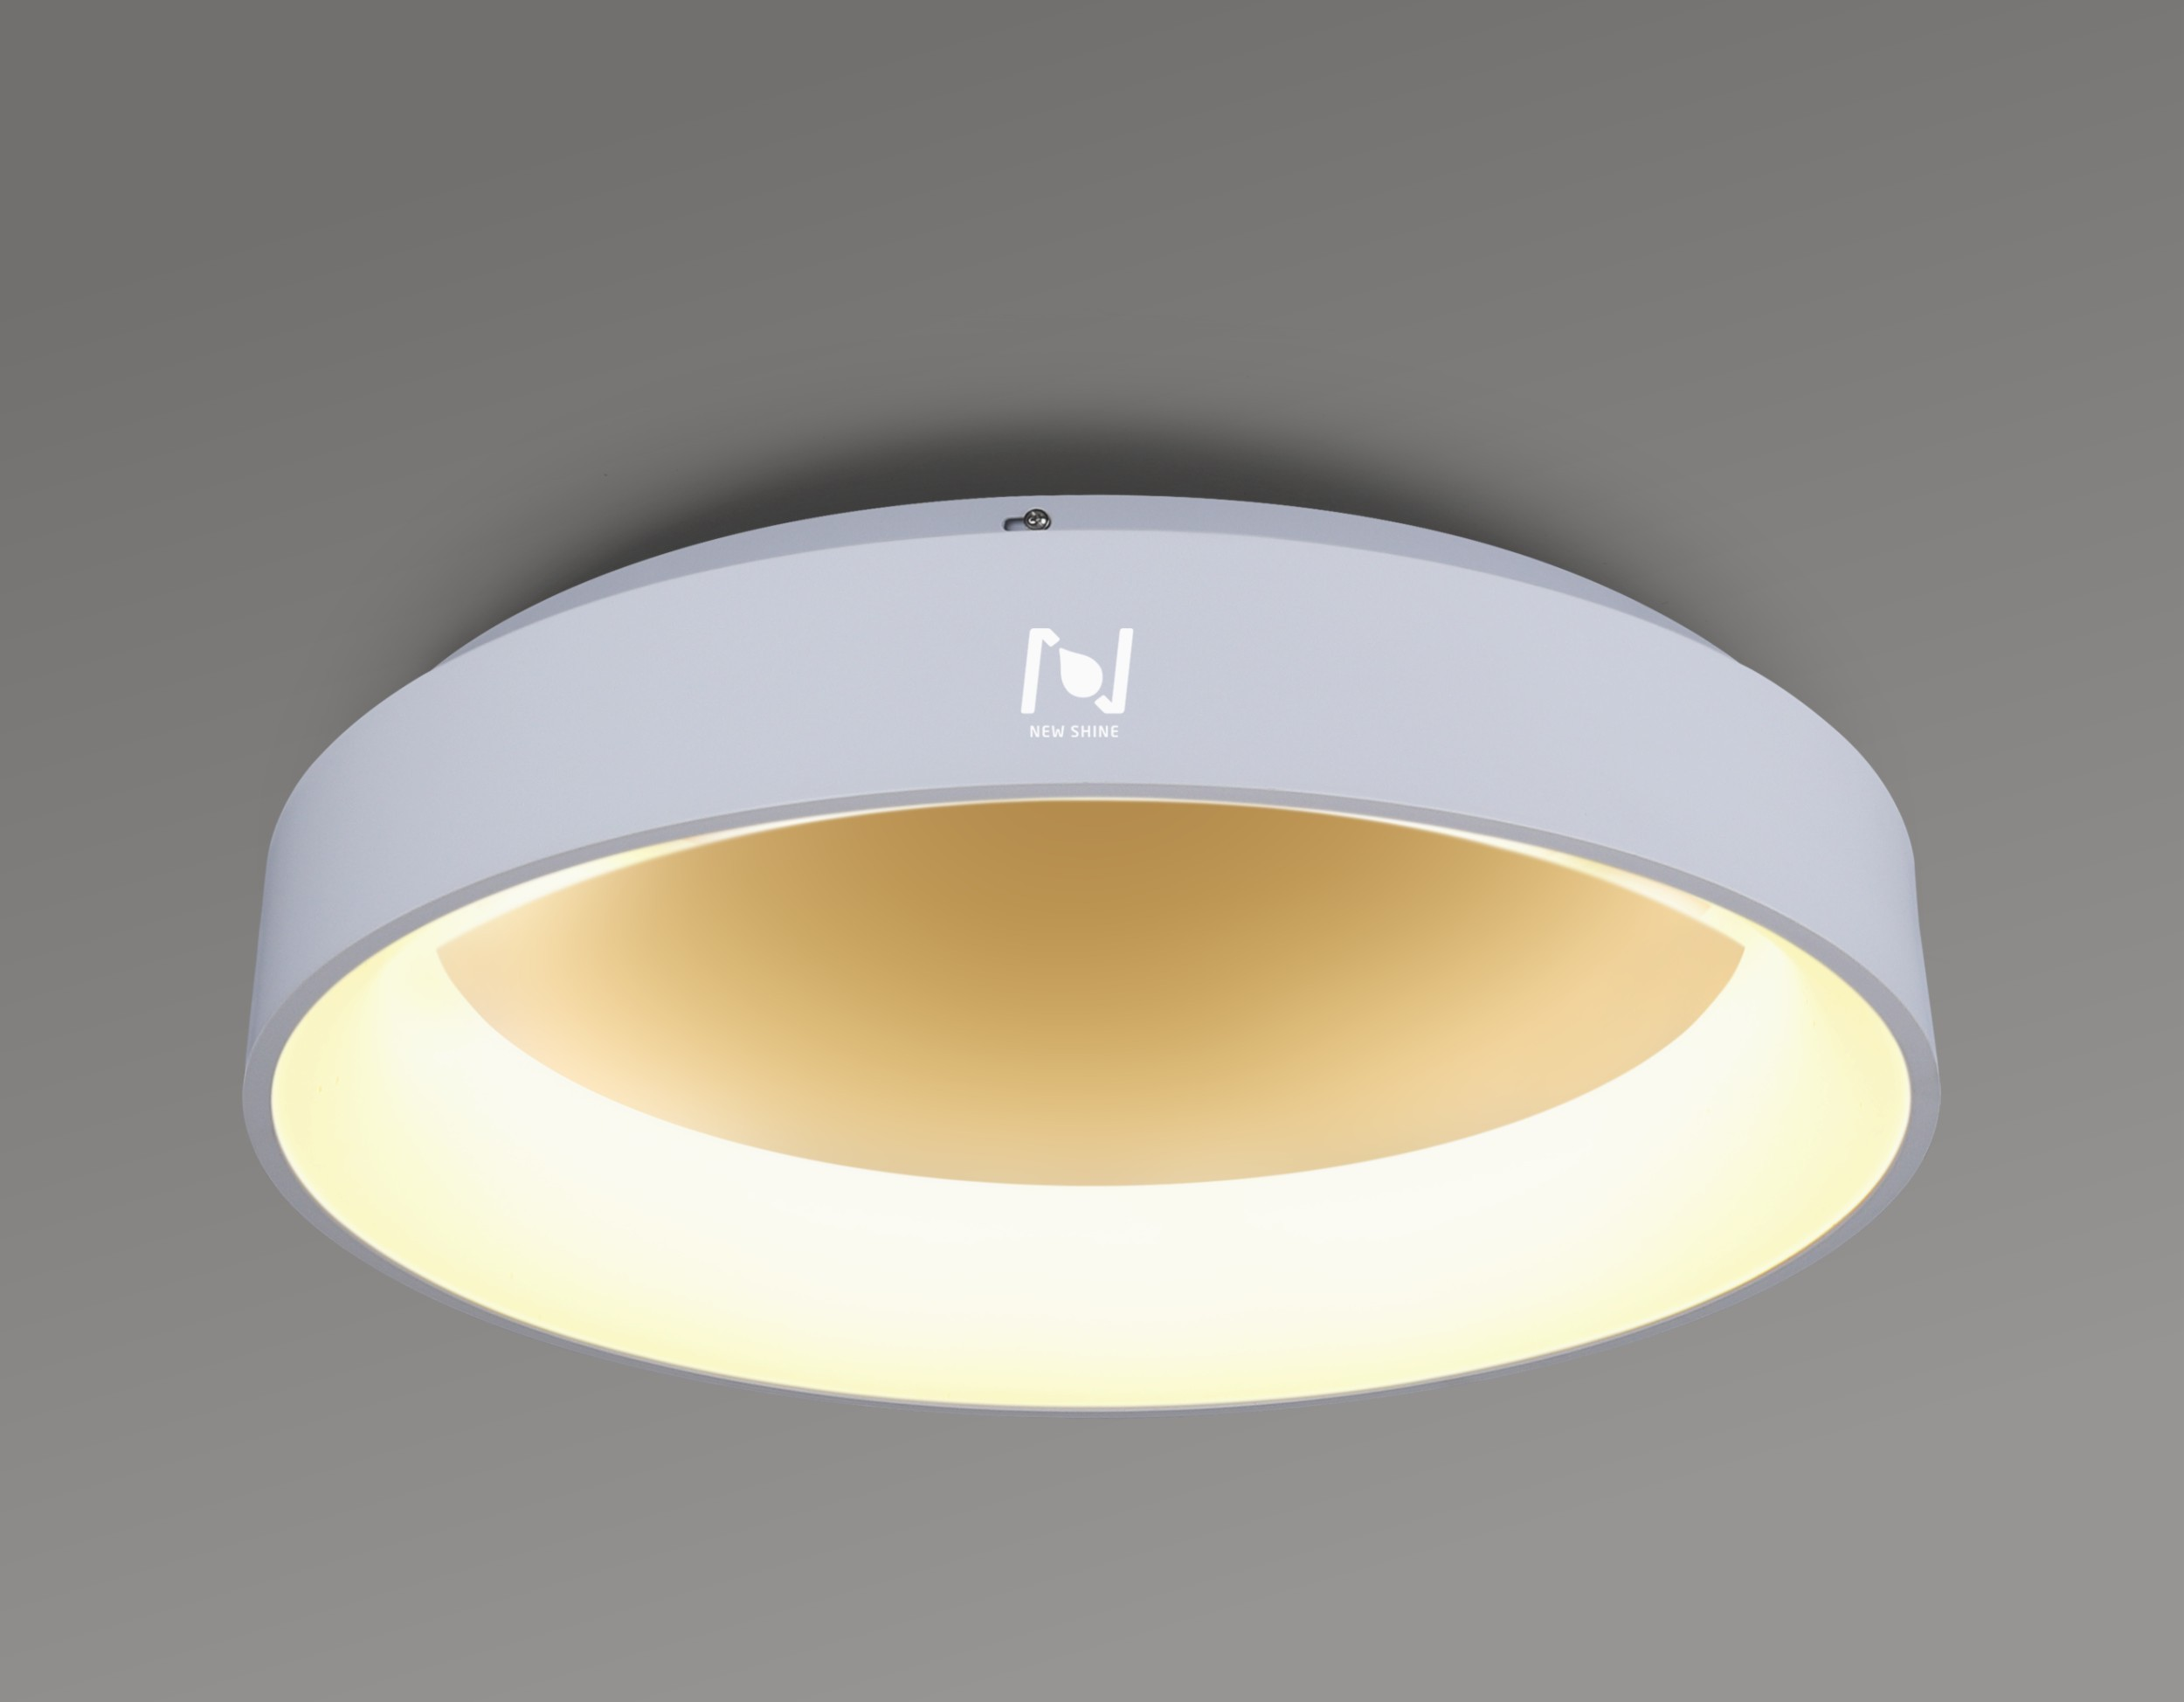 GOOD QUALITY ROUND LED DECORATIVE LIGHTING WITH MOUNTED WAY LL0201M-50W